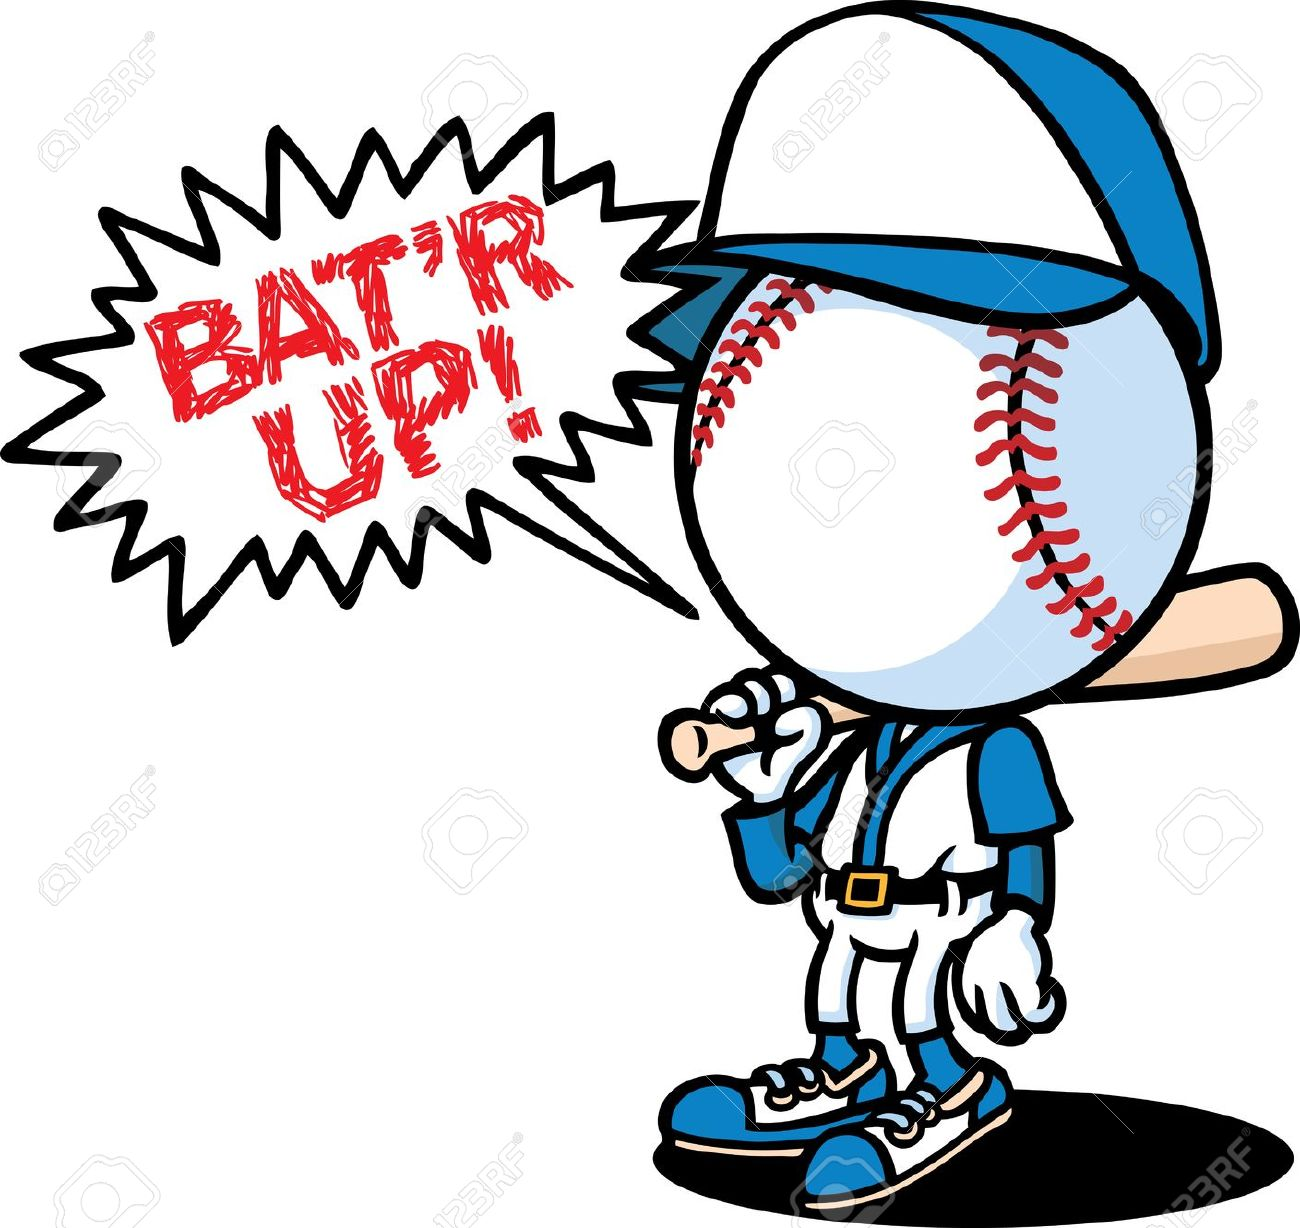 Batter Up Royalty Free Cliparts, Vectors, And Stock Illustration.